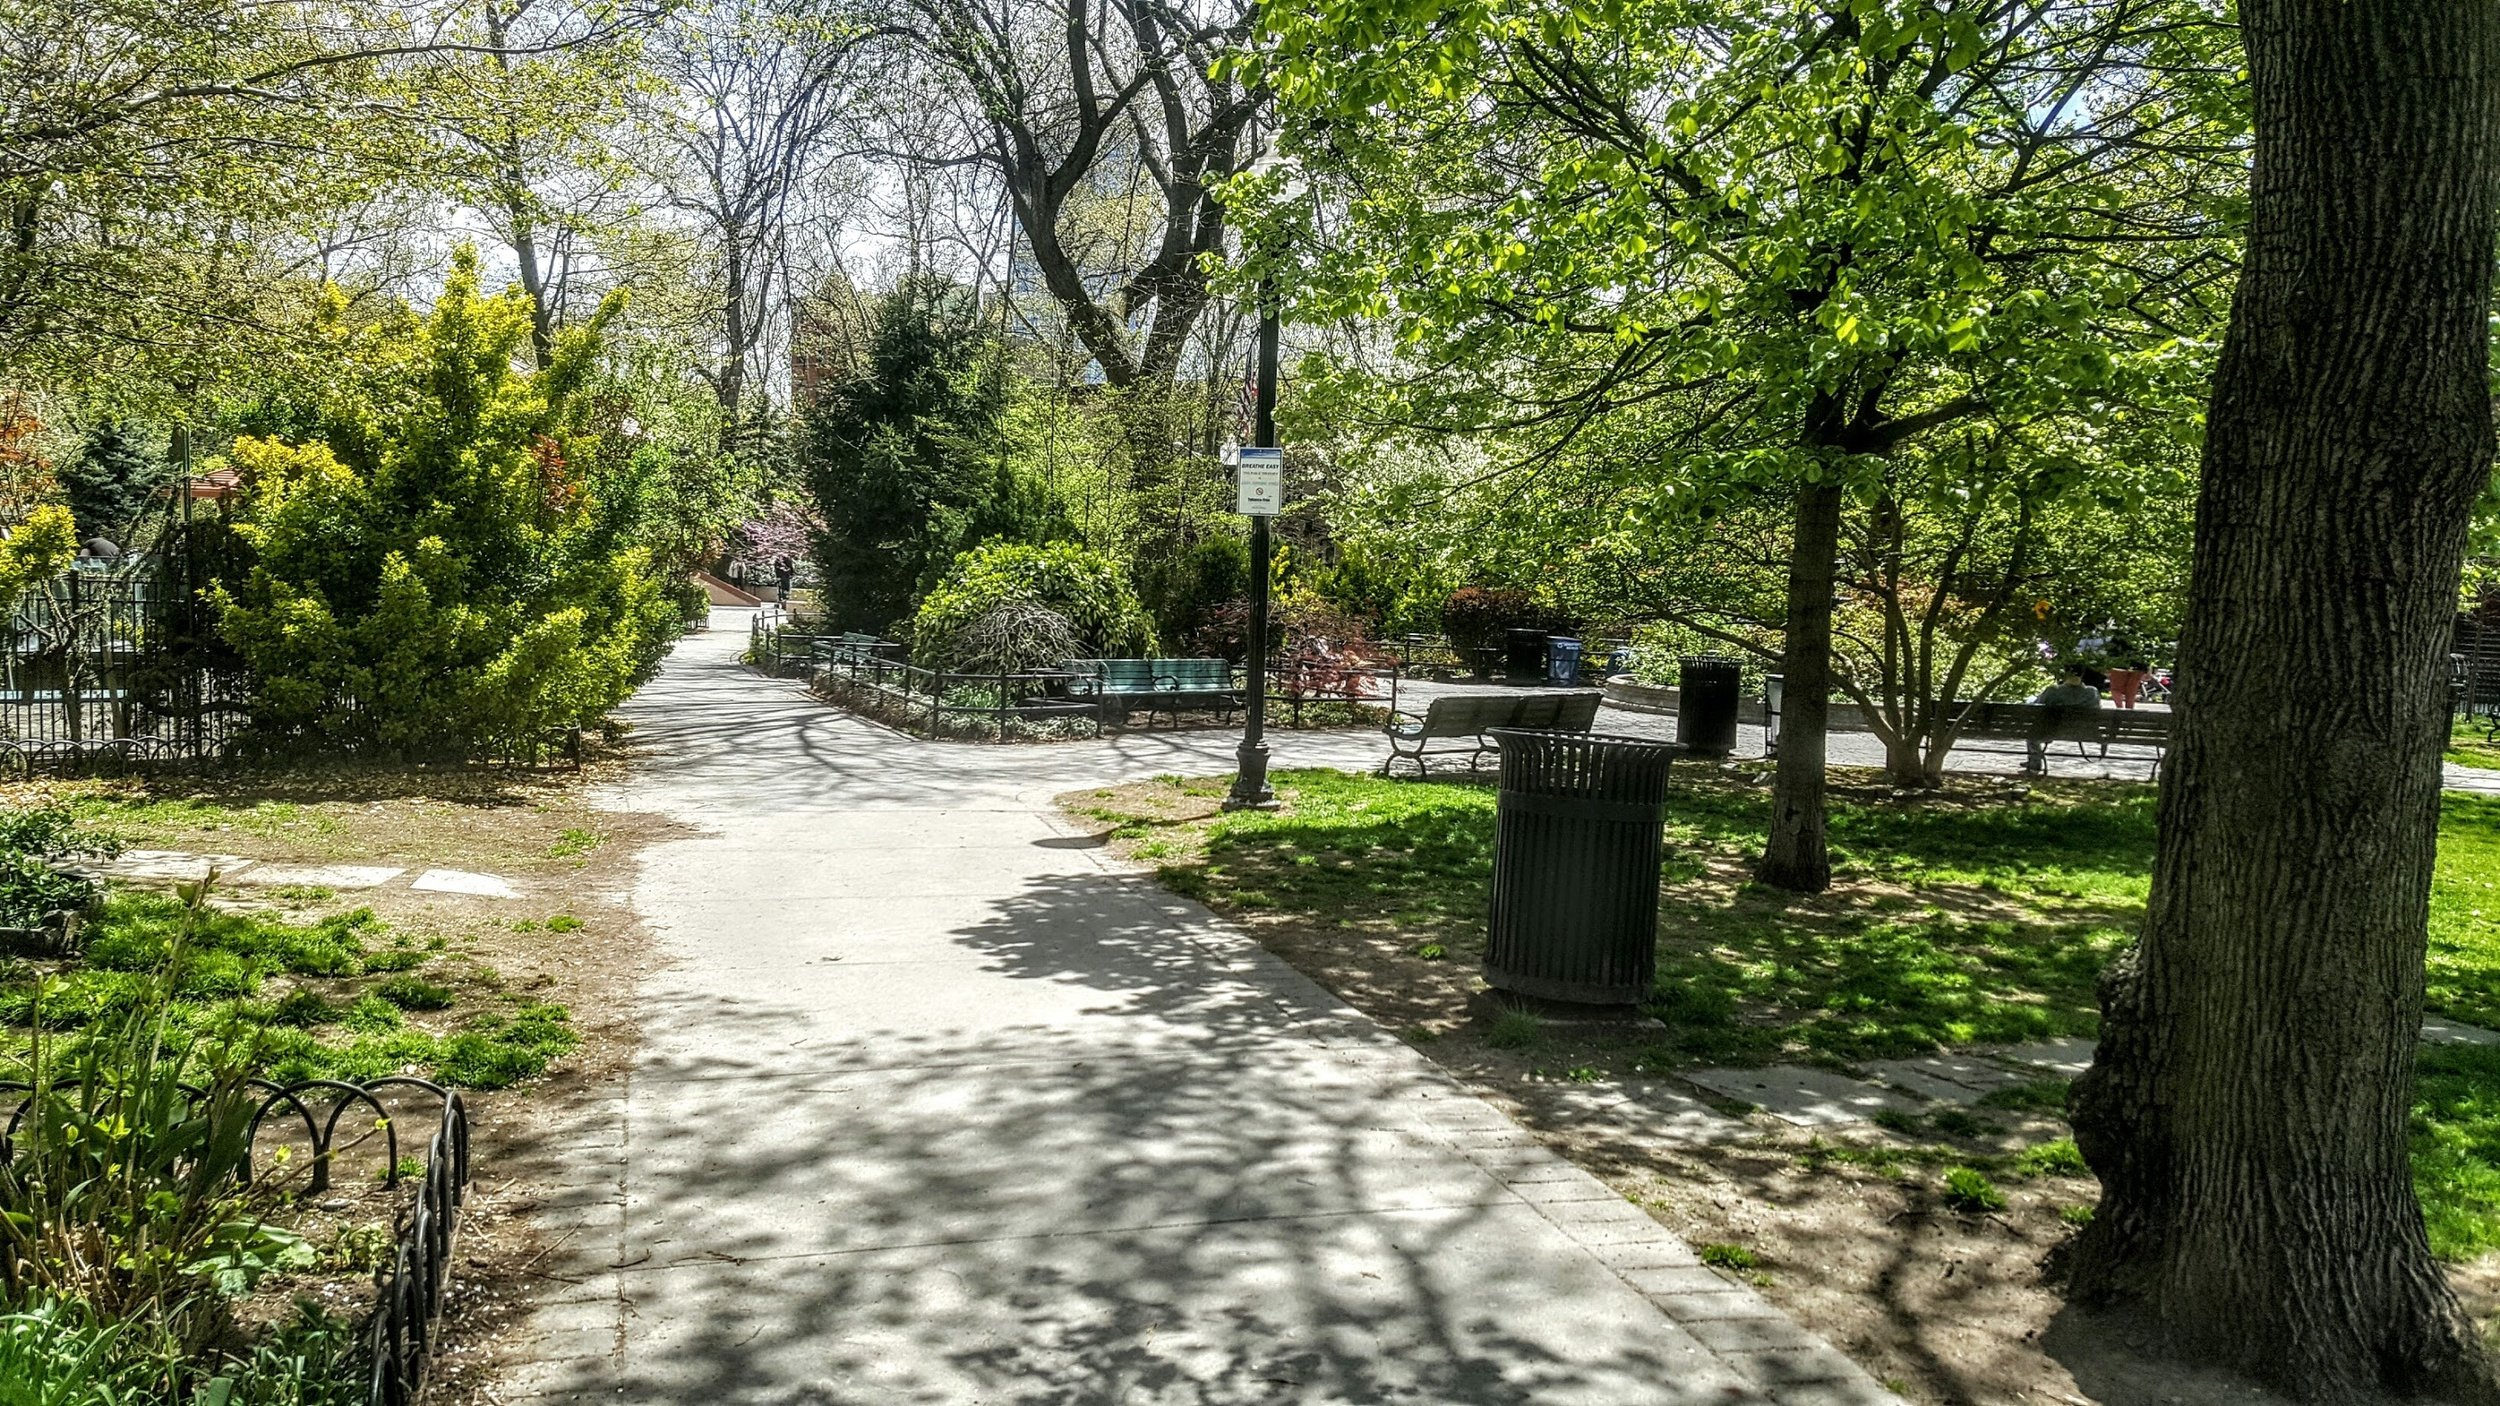 A path that weaves around benches and trees as it takes you between the various outdoor rooms of the park.